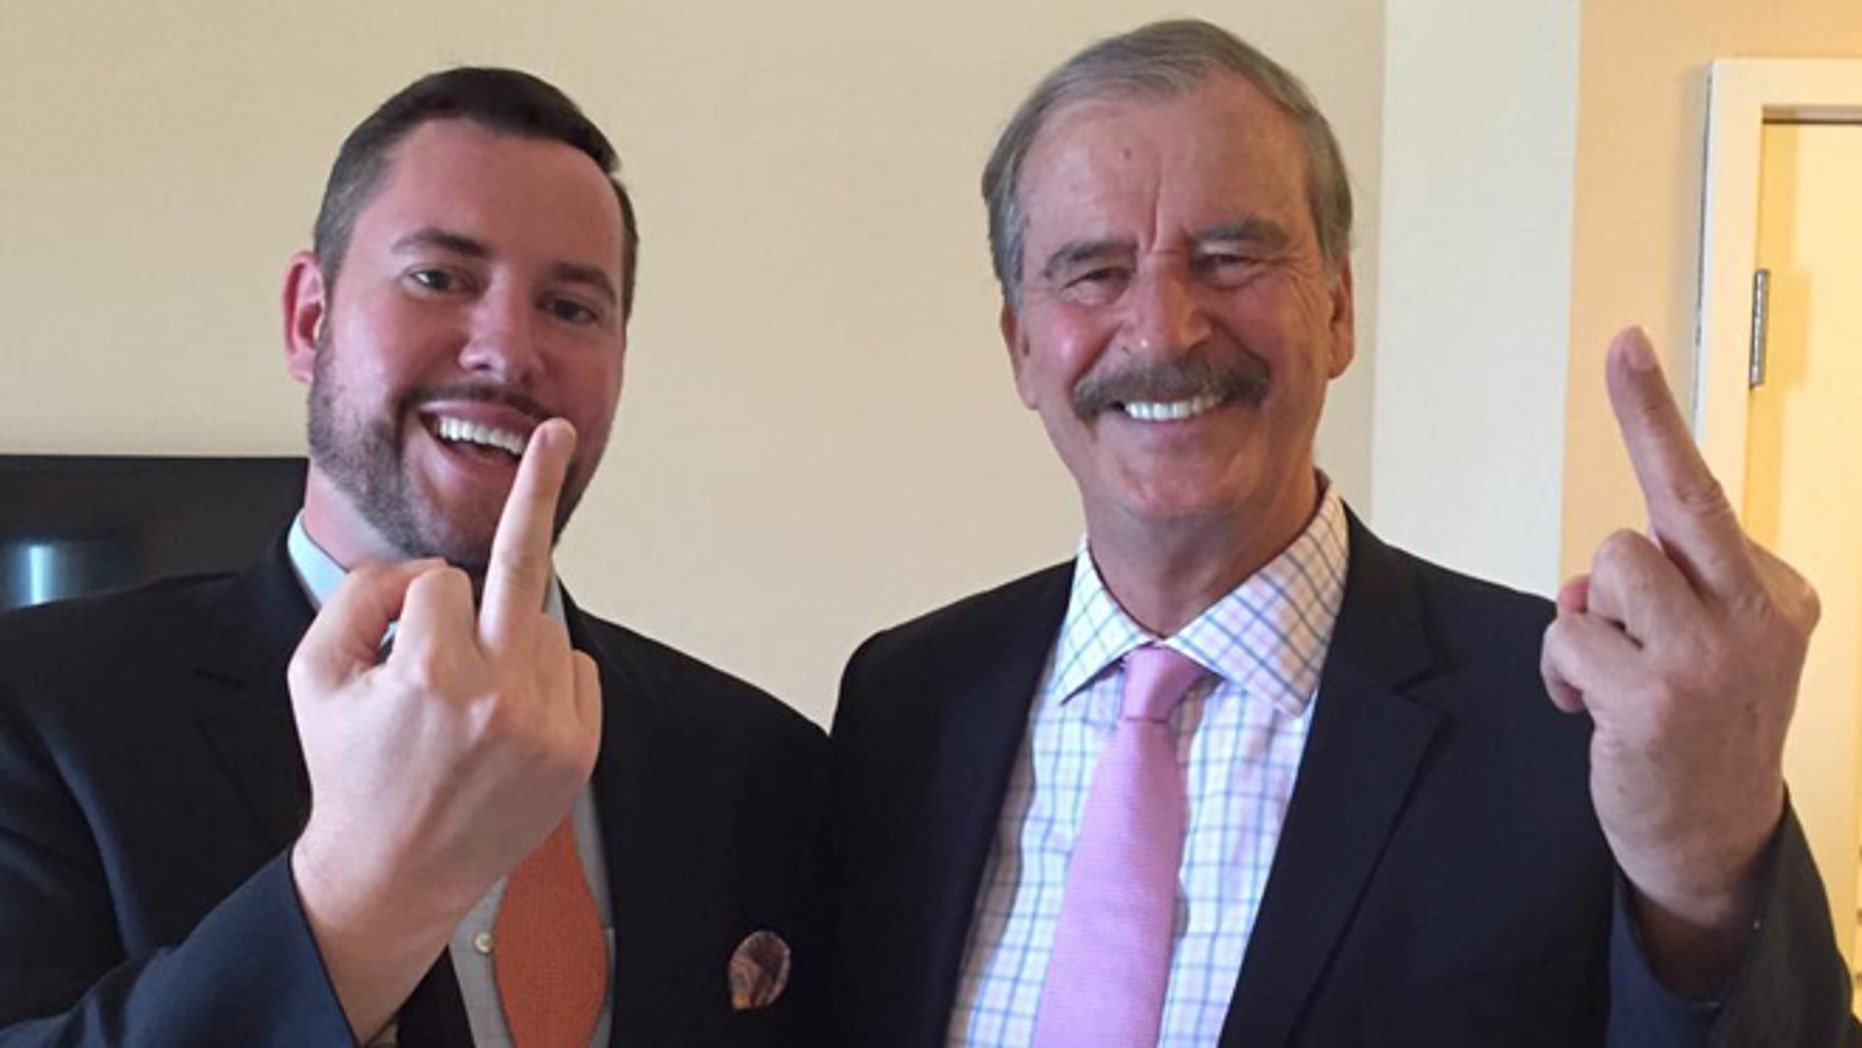 Former Mexican President Vicente Fox (right) makes an obscene gesture to Donald Trump after appearing on the Kickass Politics podcast with host Ben Mathis.